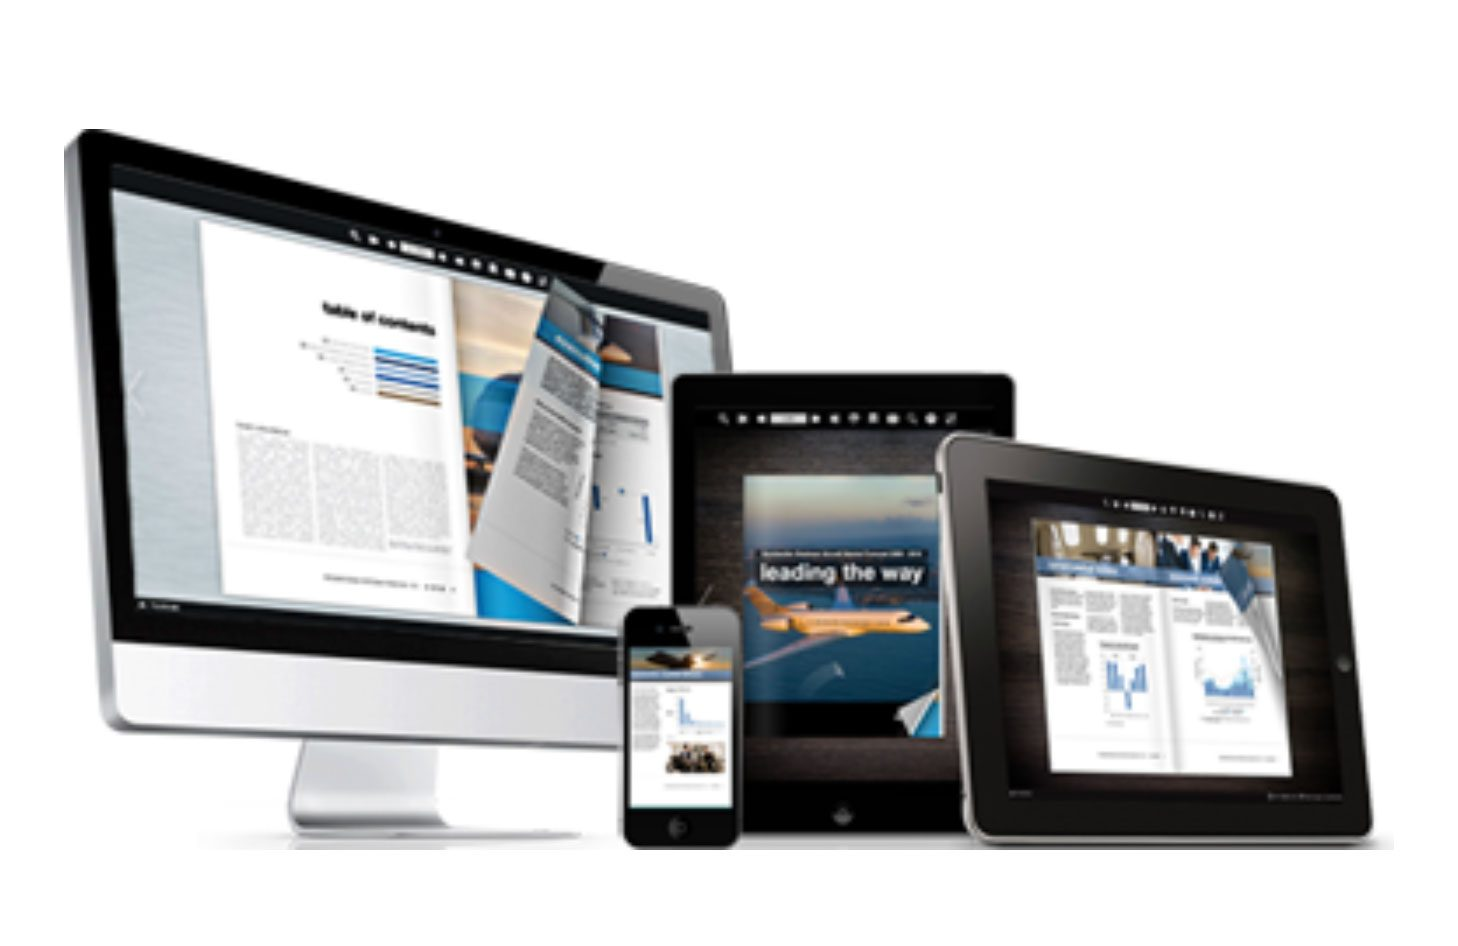 emagazine can be stream to your device for you to browse your favorite magazines